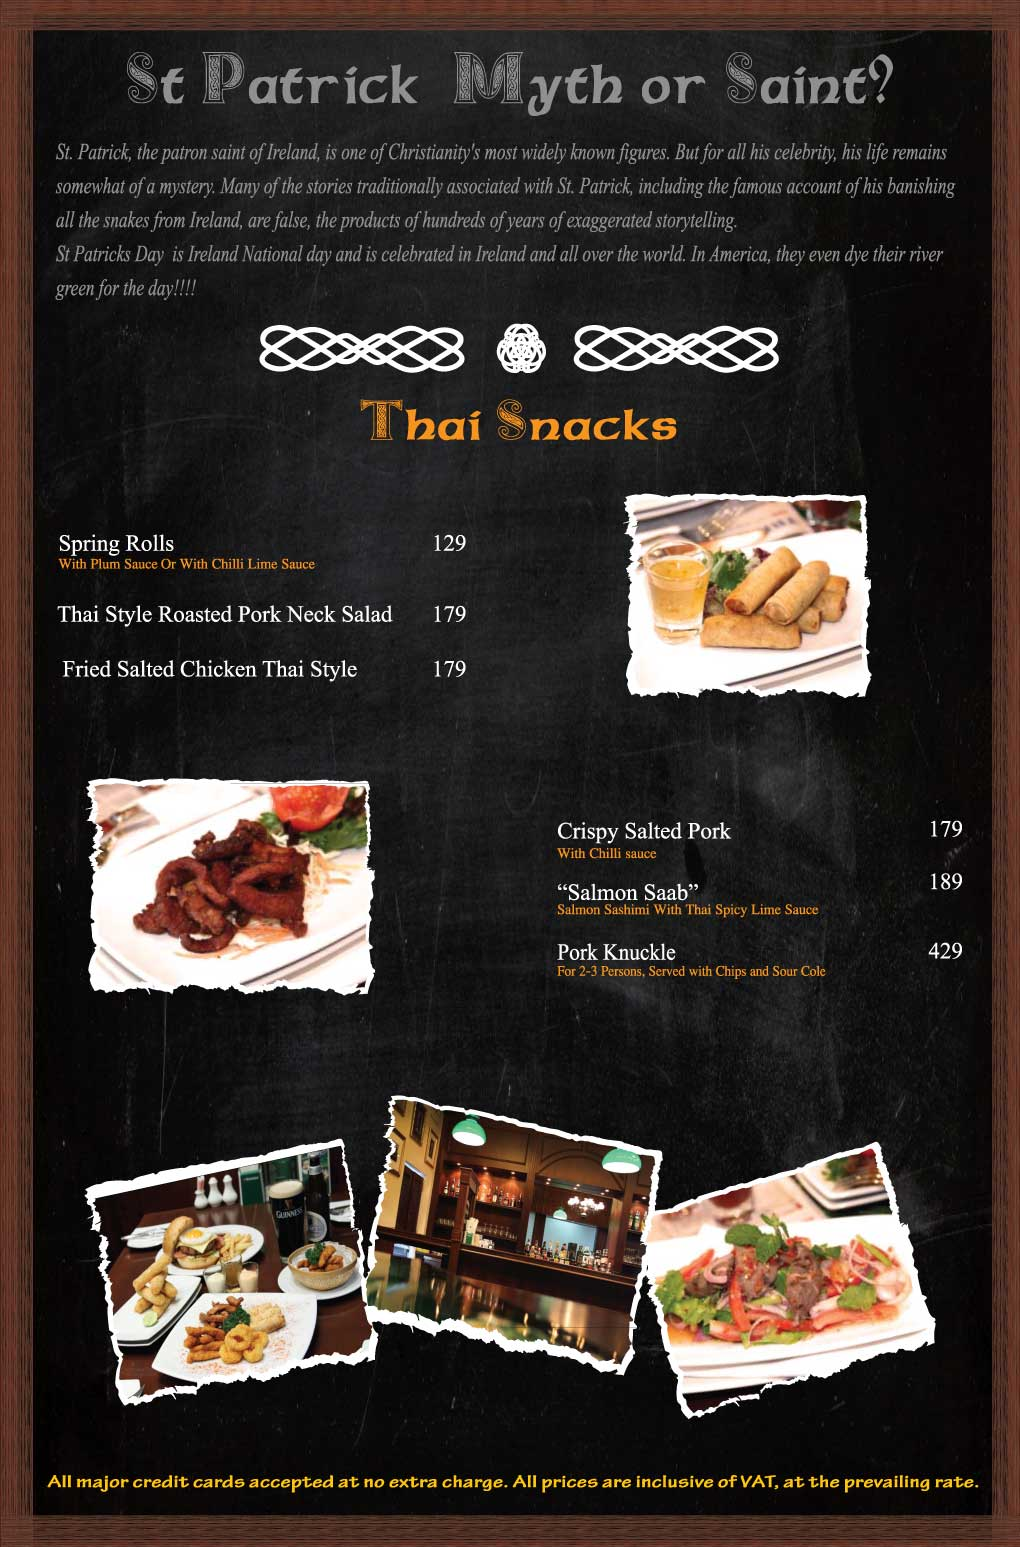 Flann Asiatique Food Menu Thai Snacks